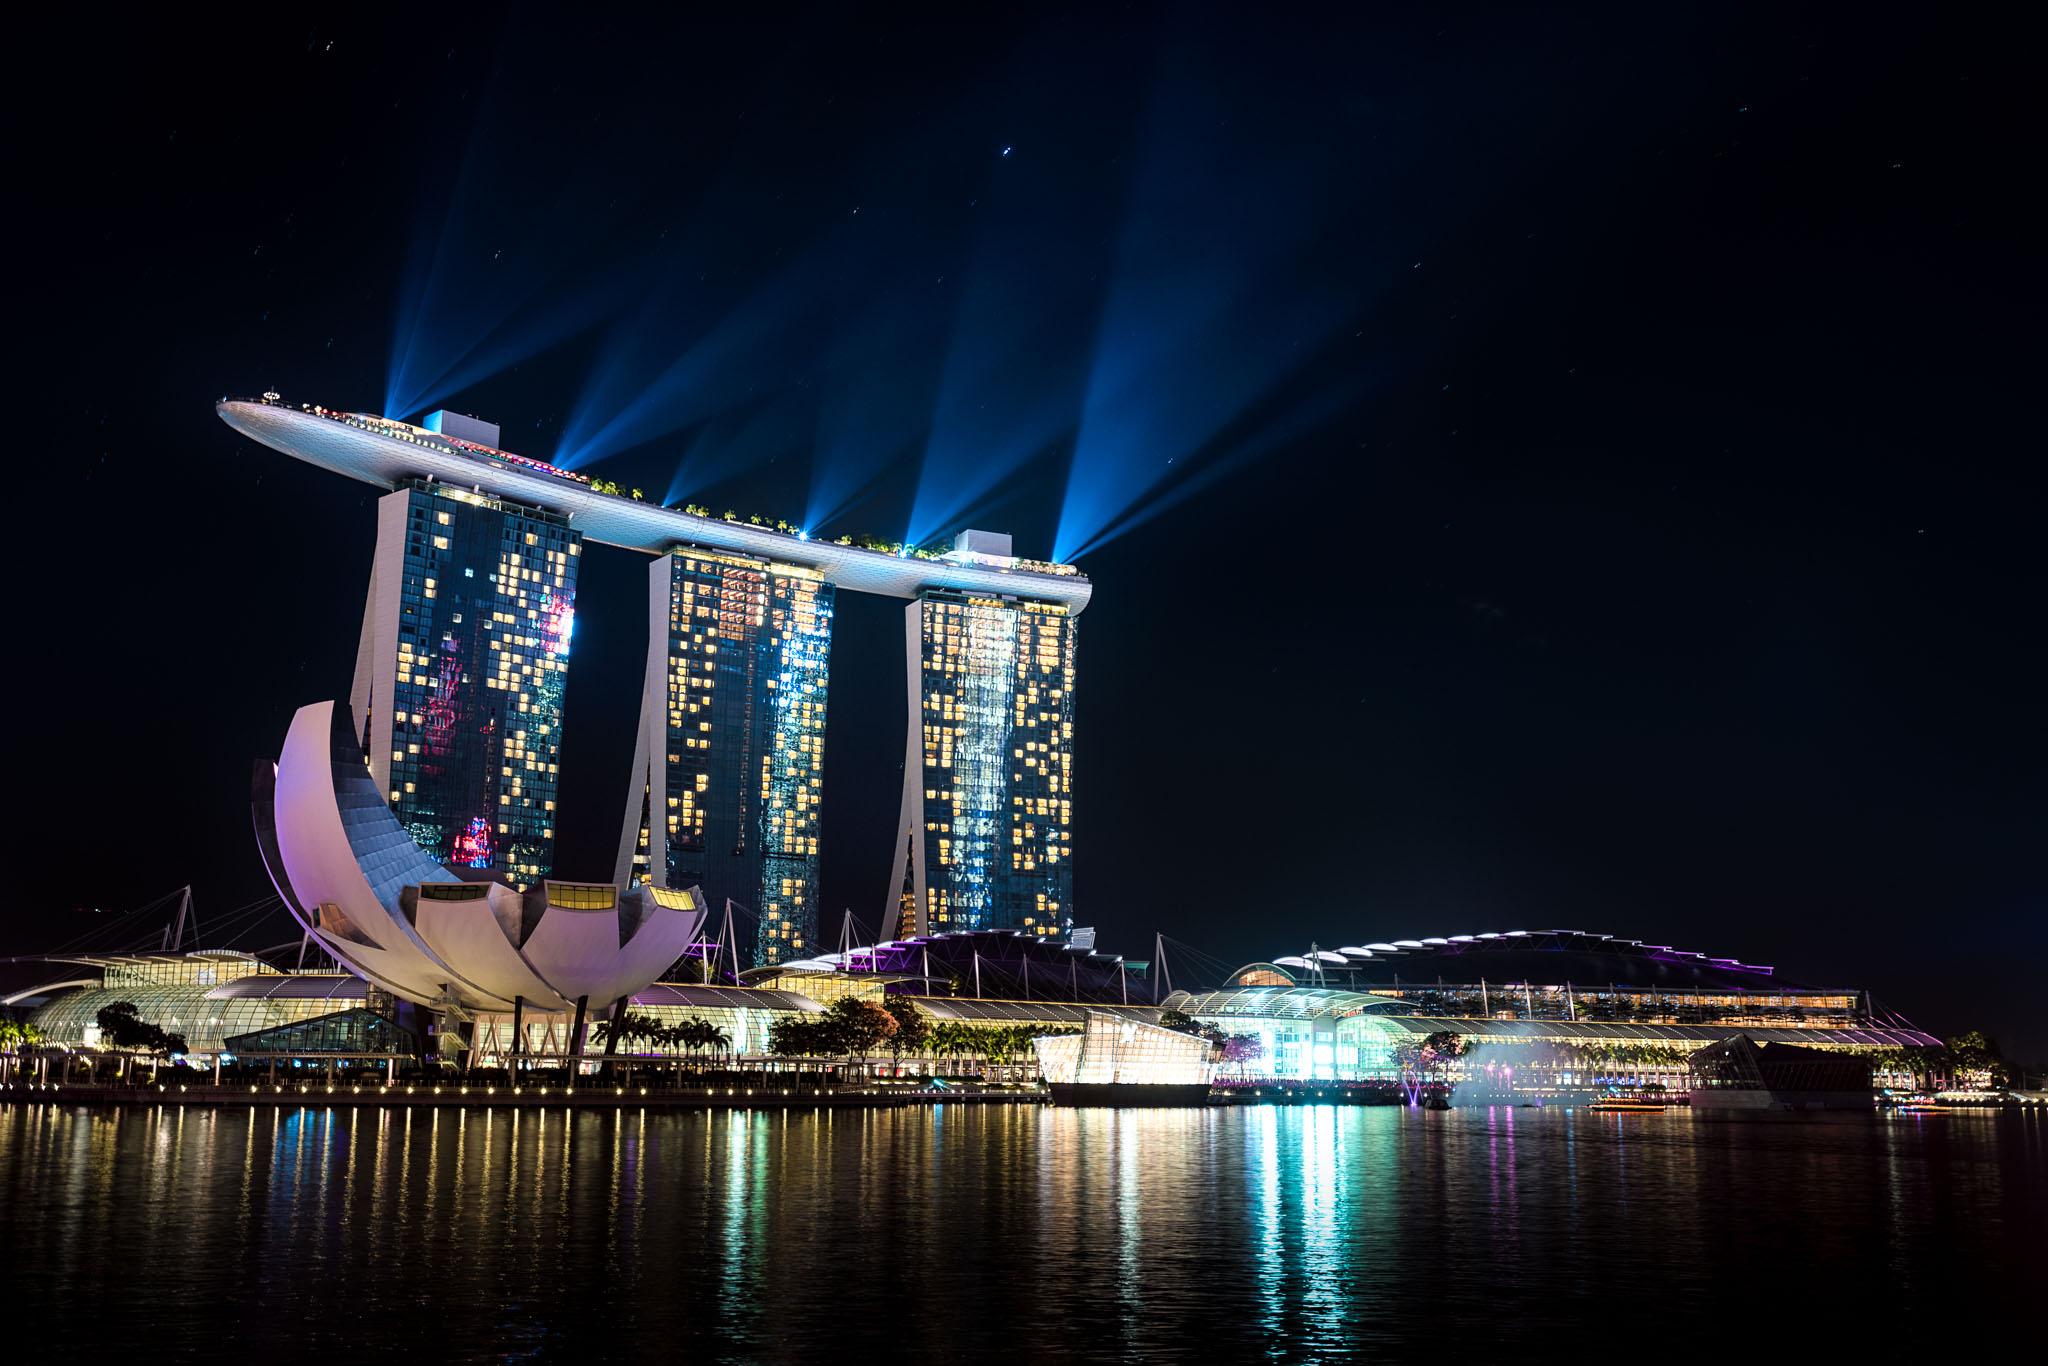 Marina Bay Sands Singapore Picture Of The Week Marina Bay Sands Singapore Andy 39s